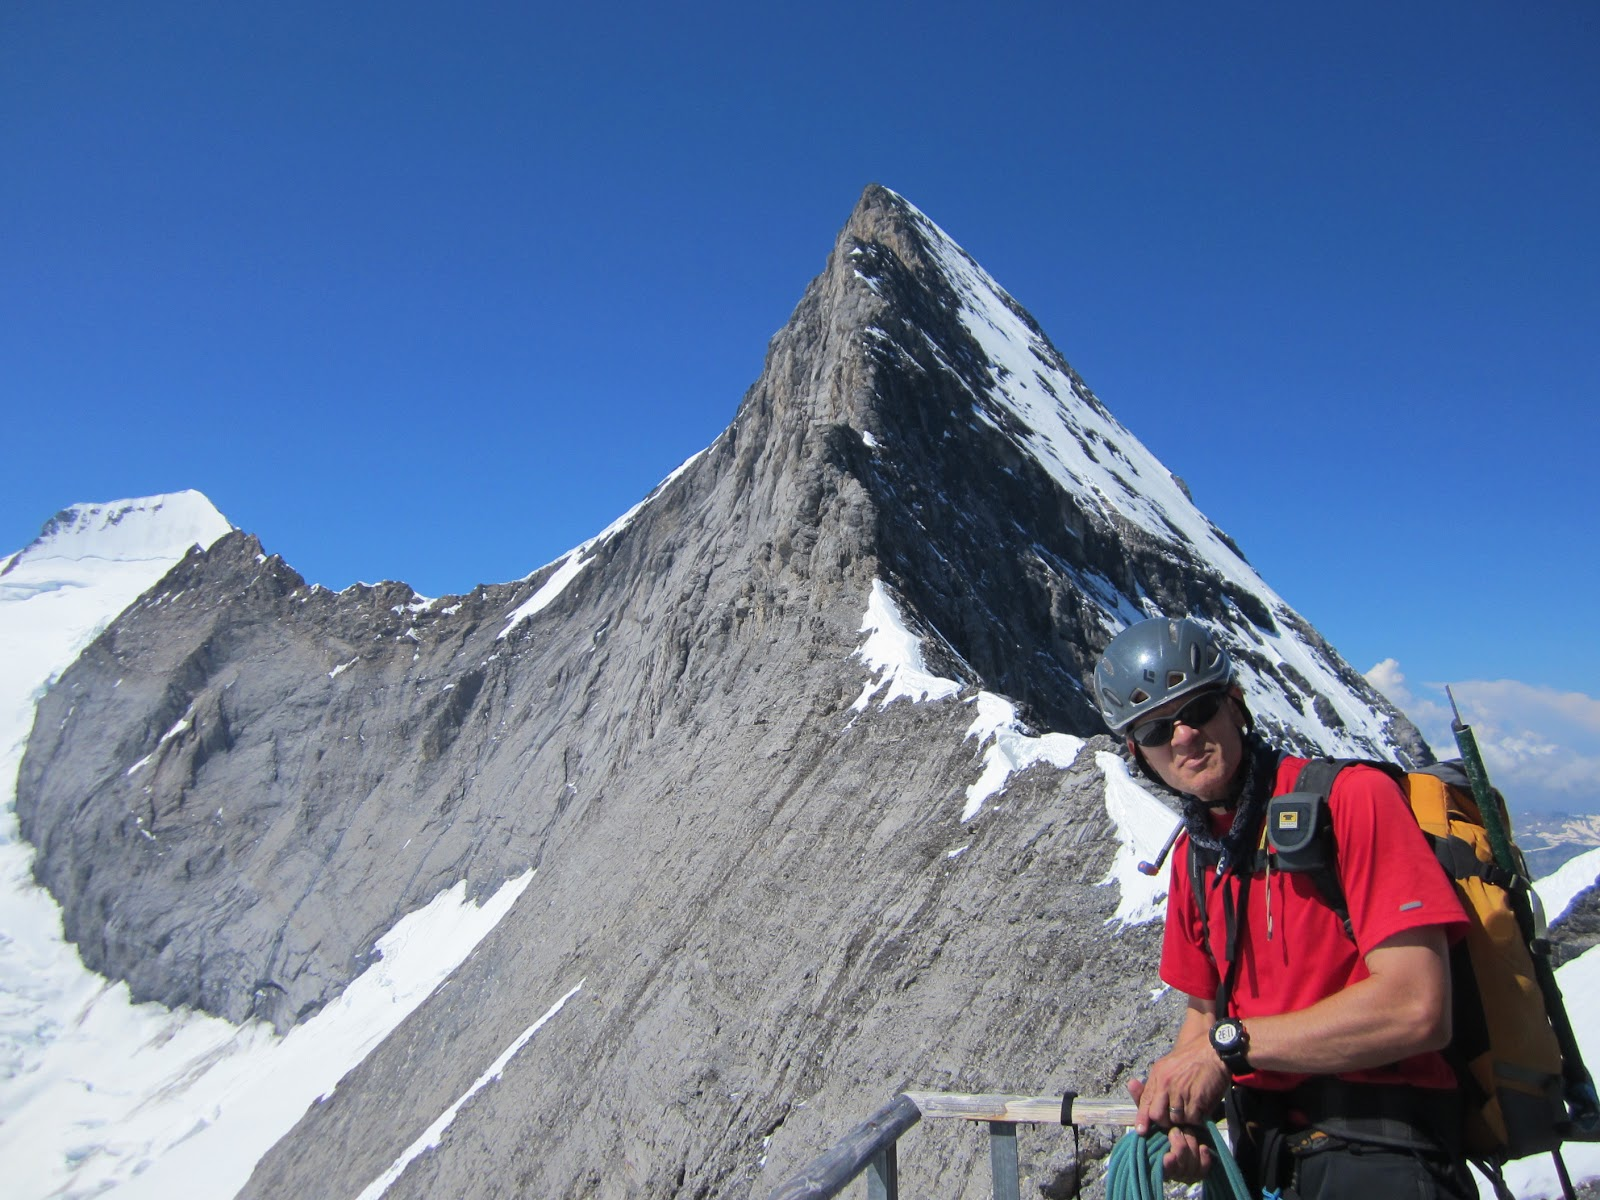 climbing trip reports eiger day 3 mitteleggi hut to